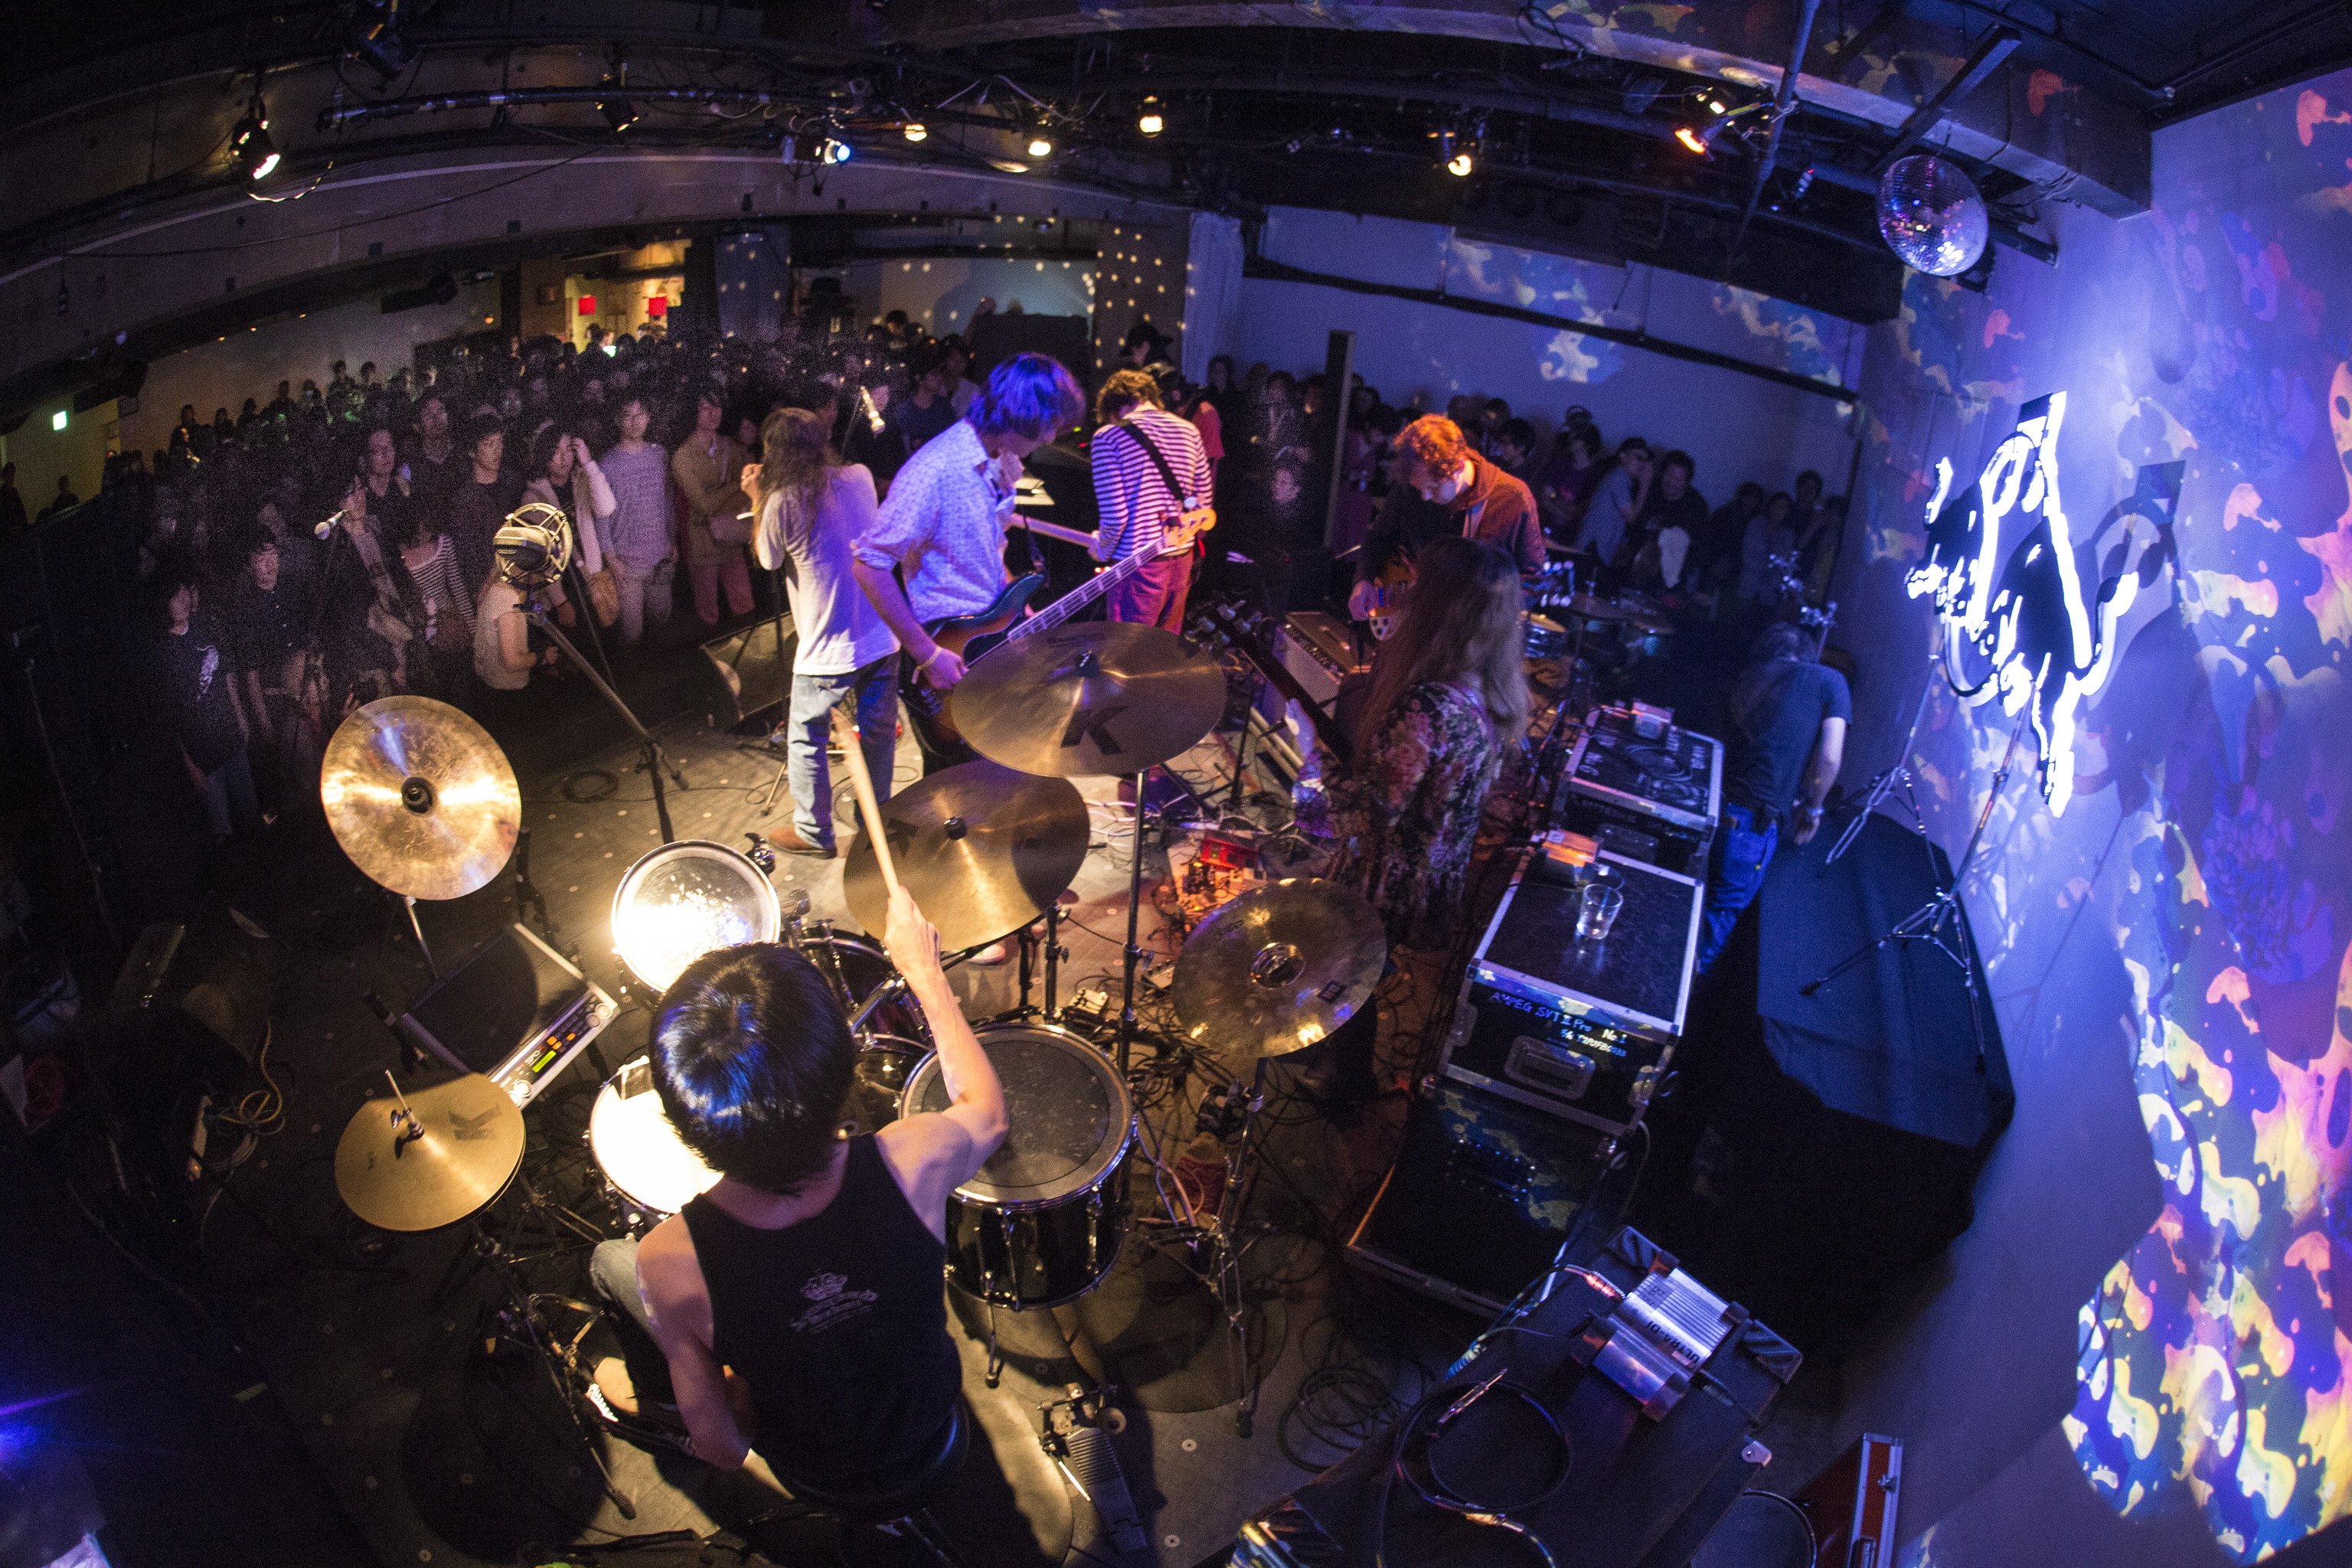 Musical showcase: Damo Suzuki performs during the Red Bull Music Academy Weekender in Tokyo on Nov. 2. The academy will host a series of events in the capital from Oct. 12 to Nov. 14.   PERE MASRAMON/RED BULL CONTENT POOL